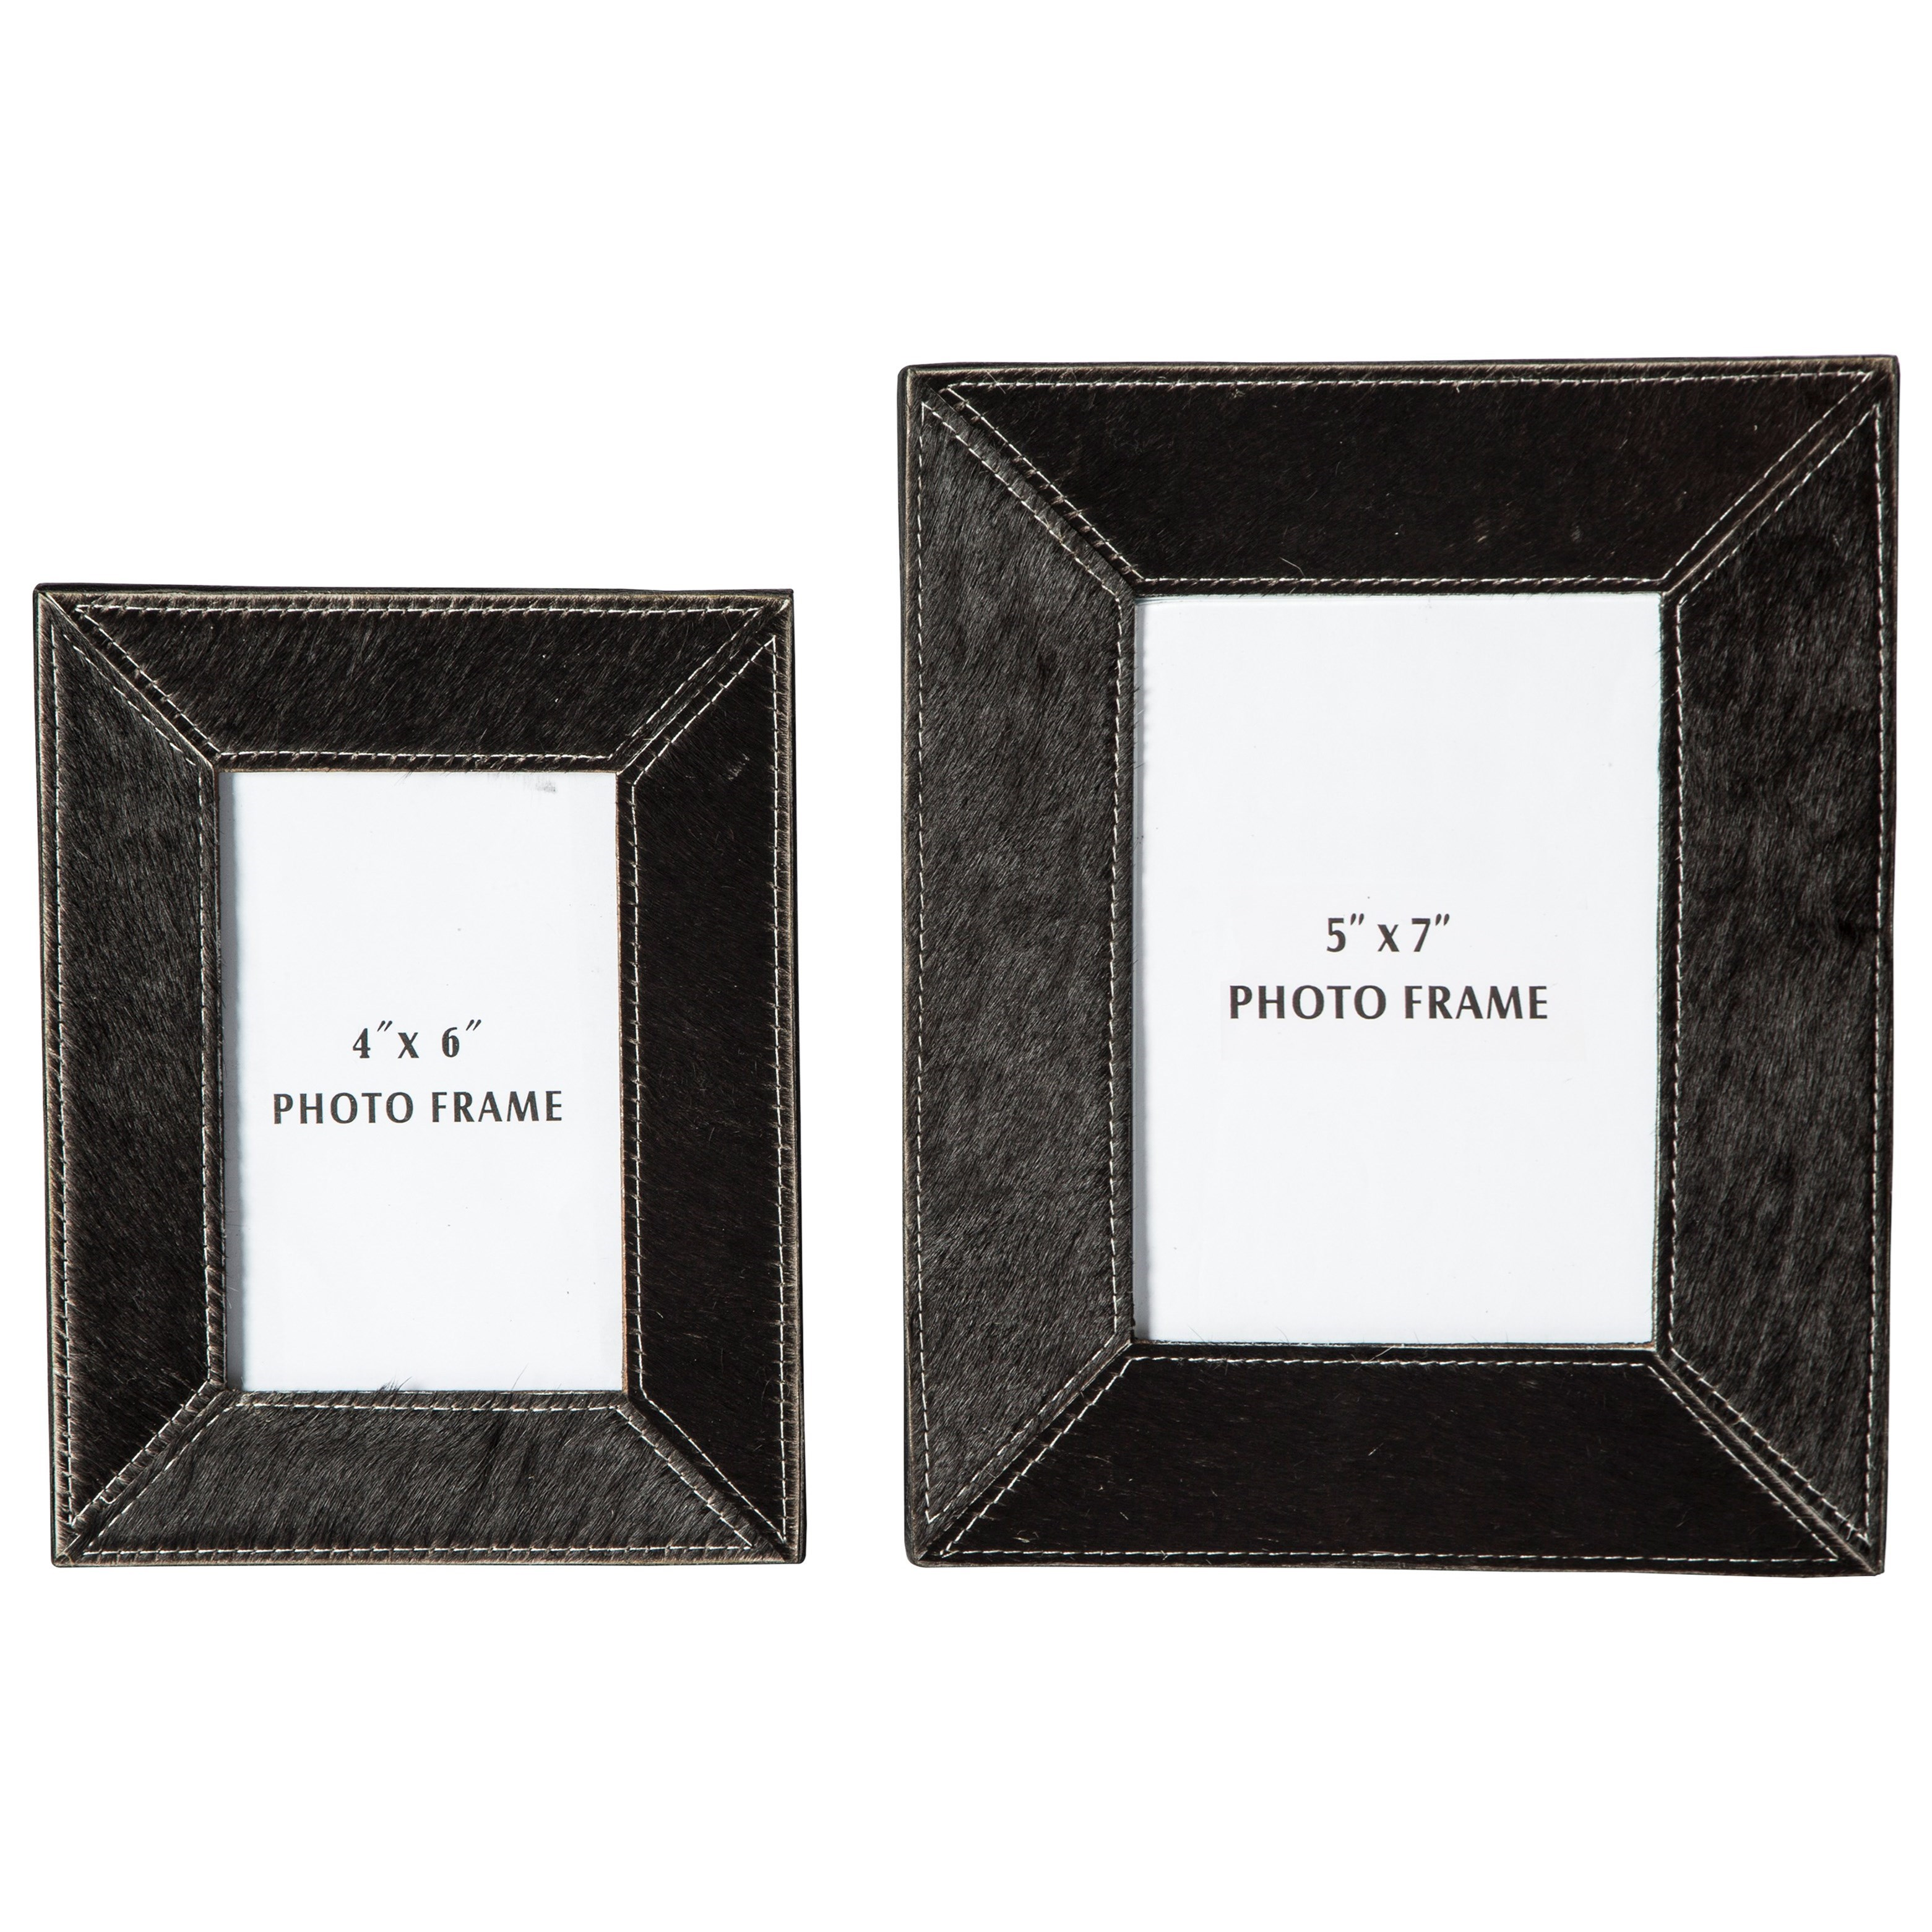 Signature Design by Ashley Accents Odeda Black Photo Frame (Set of 2) - Item Number: A2000231F